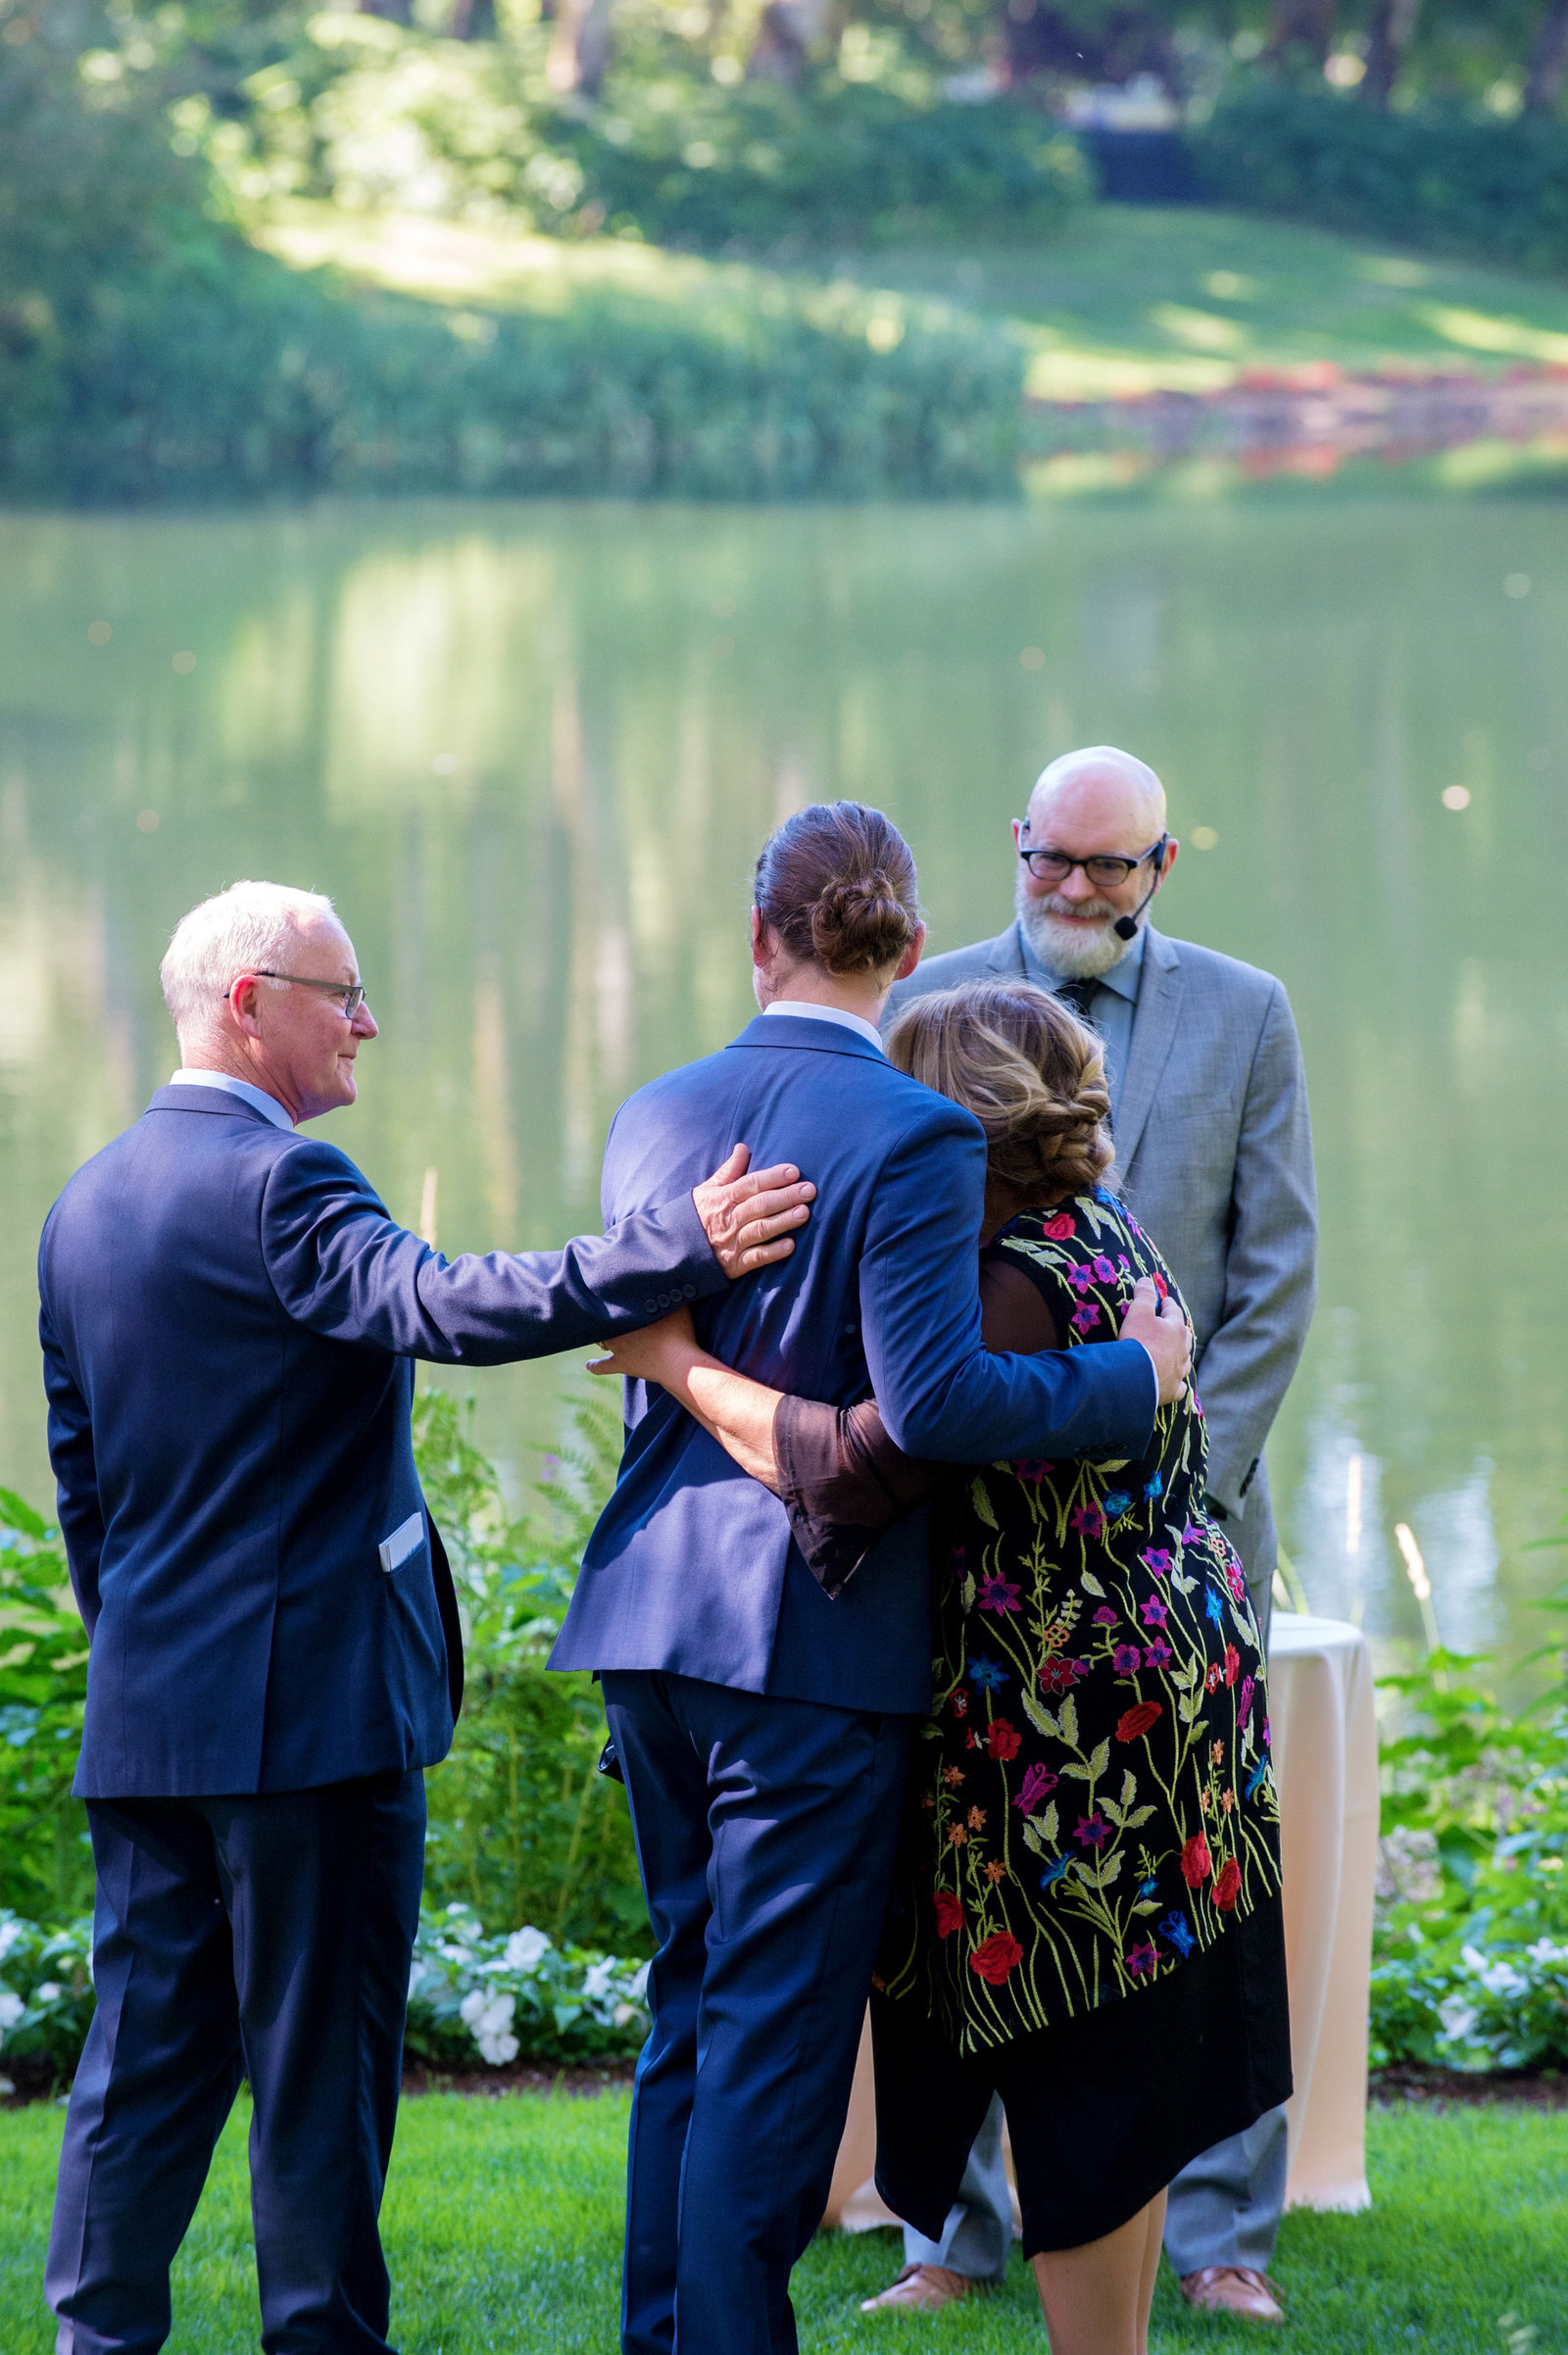 mom and dad hug the groom at the front of the wedding ceremony